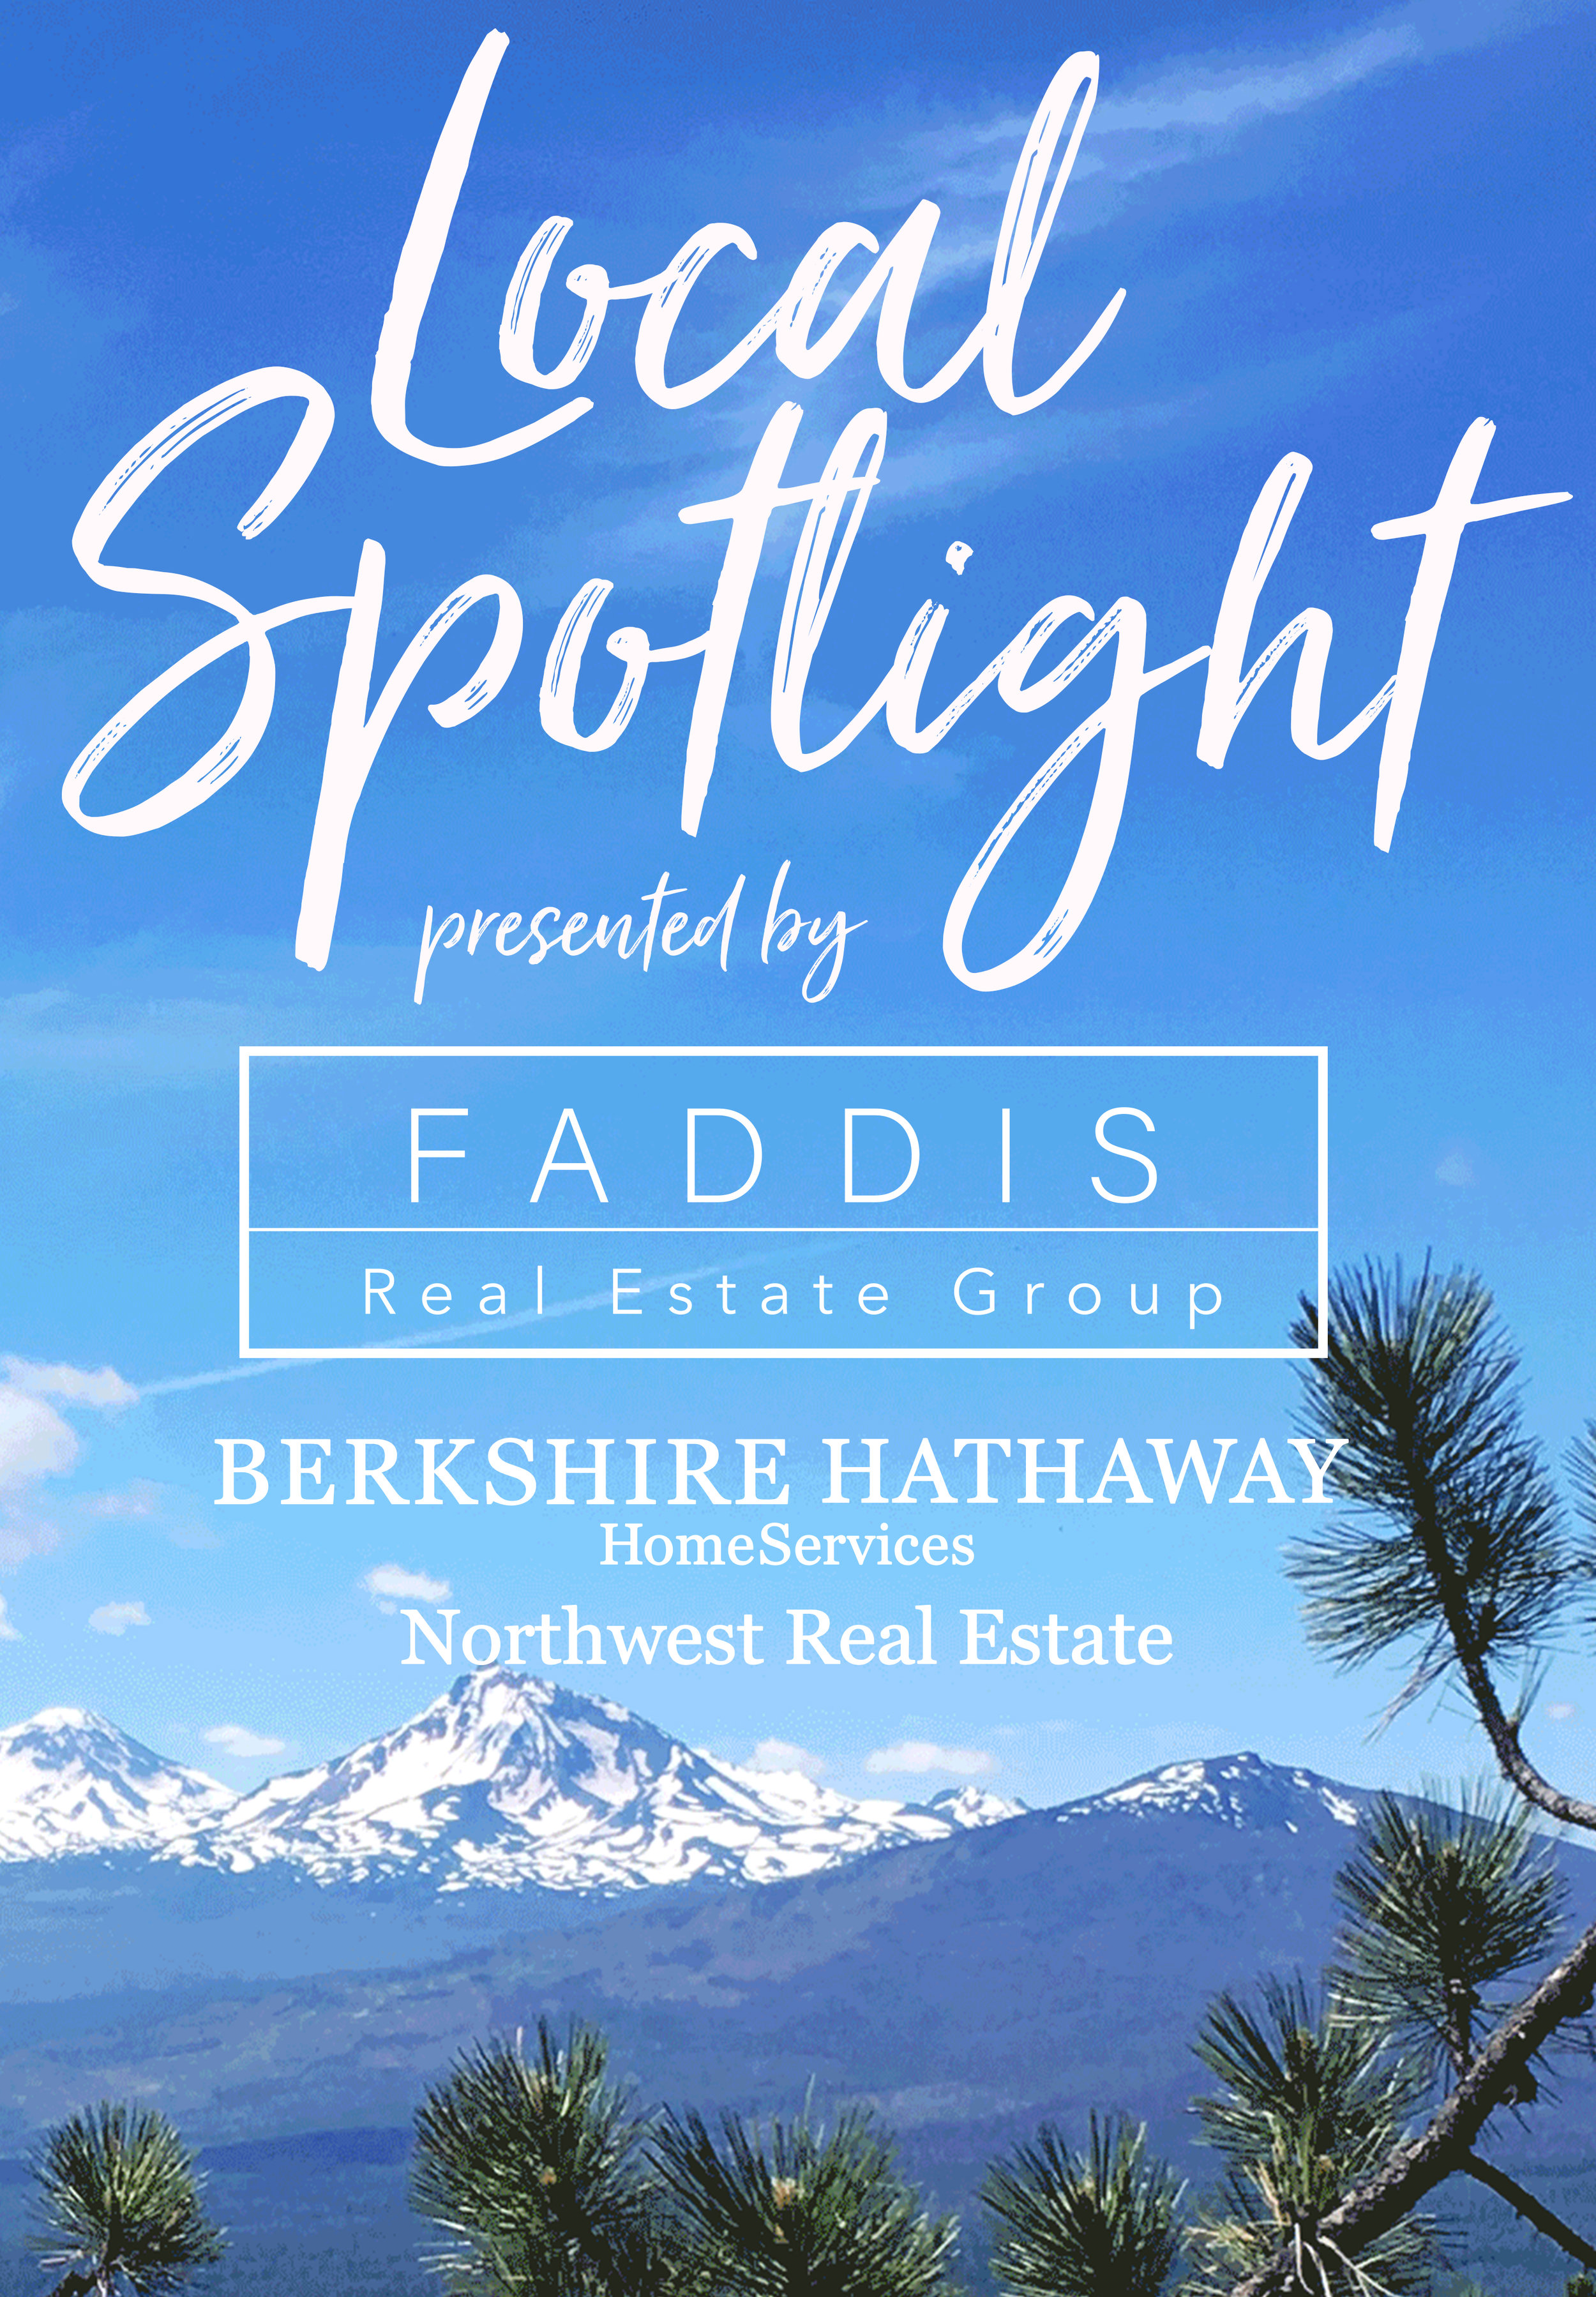 Local Spotlight, Presented by Faddis Real Estate Group powered by Berkshire Hathaway HomeServices Northwest Real Estate